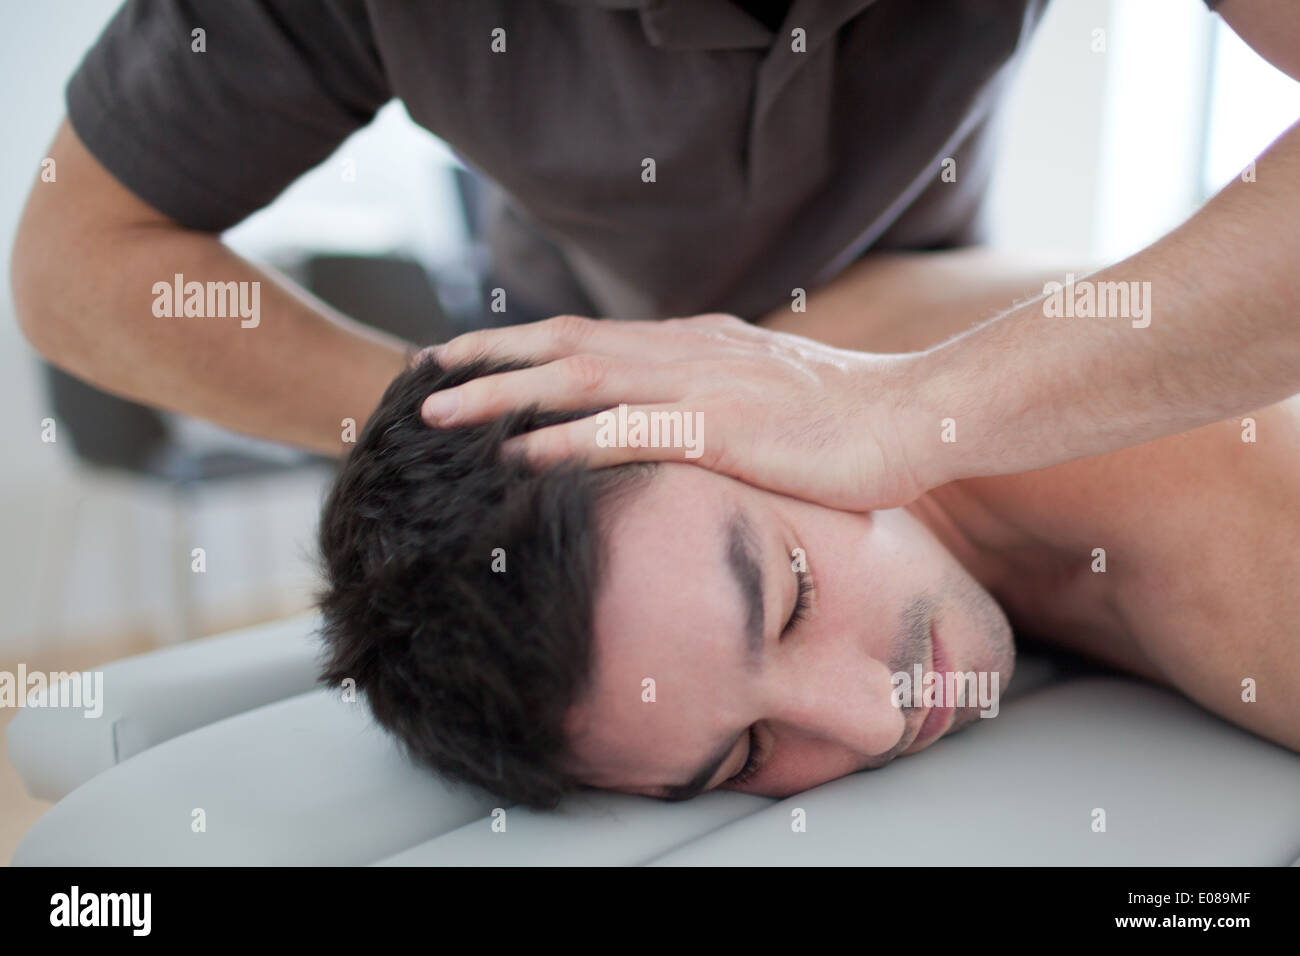 cervical manipulation - Stock Image